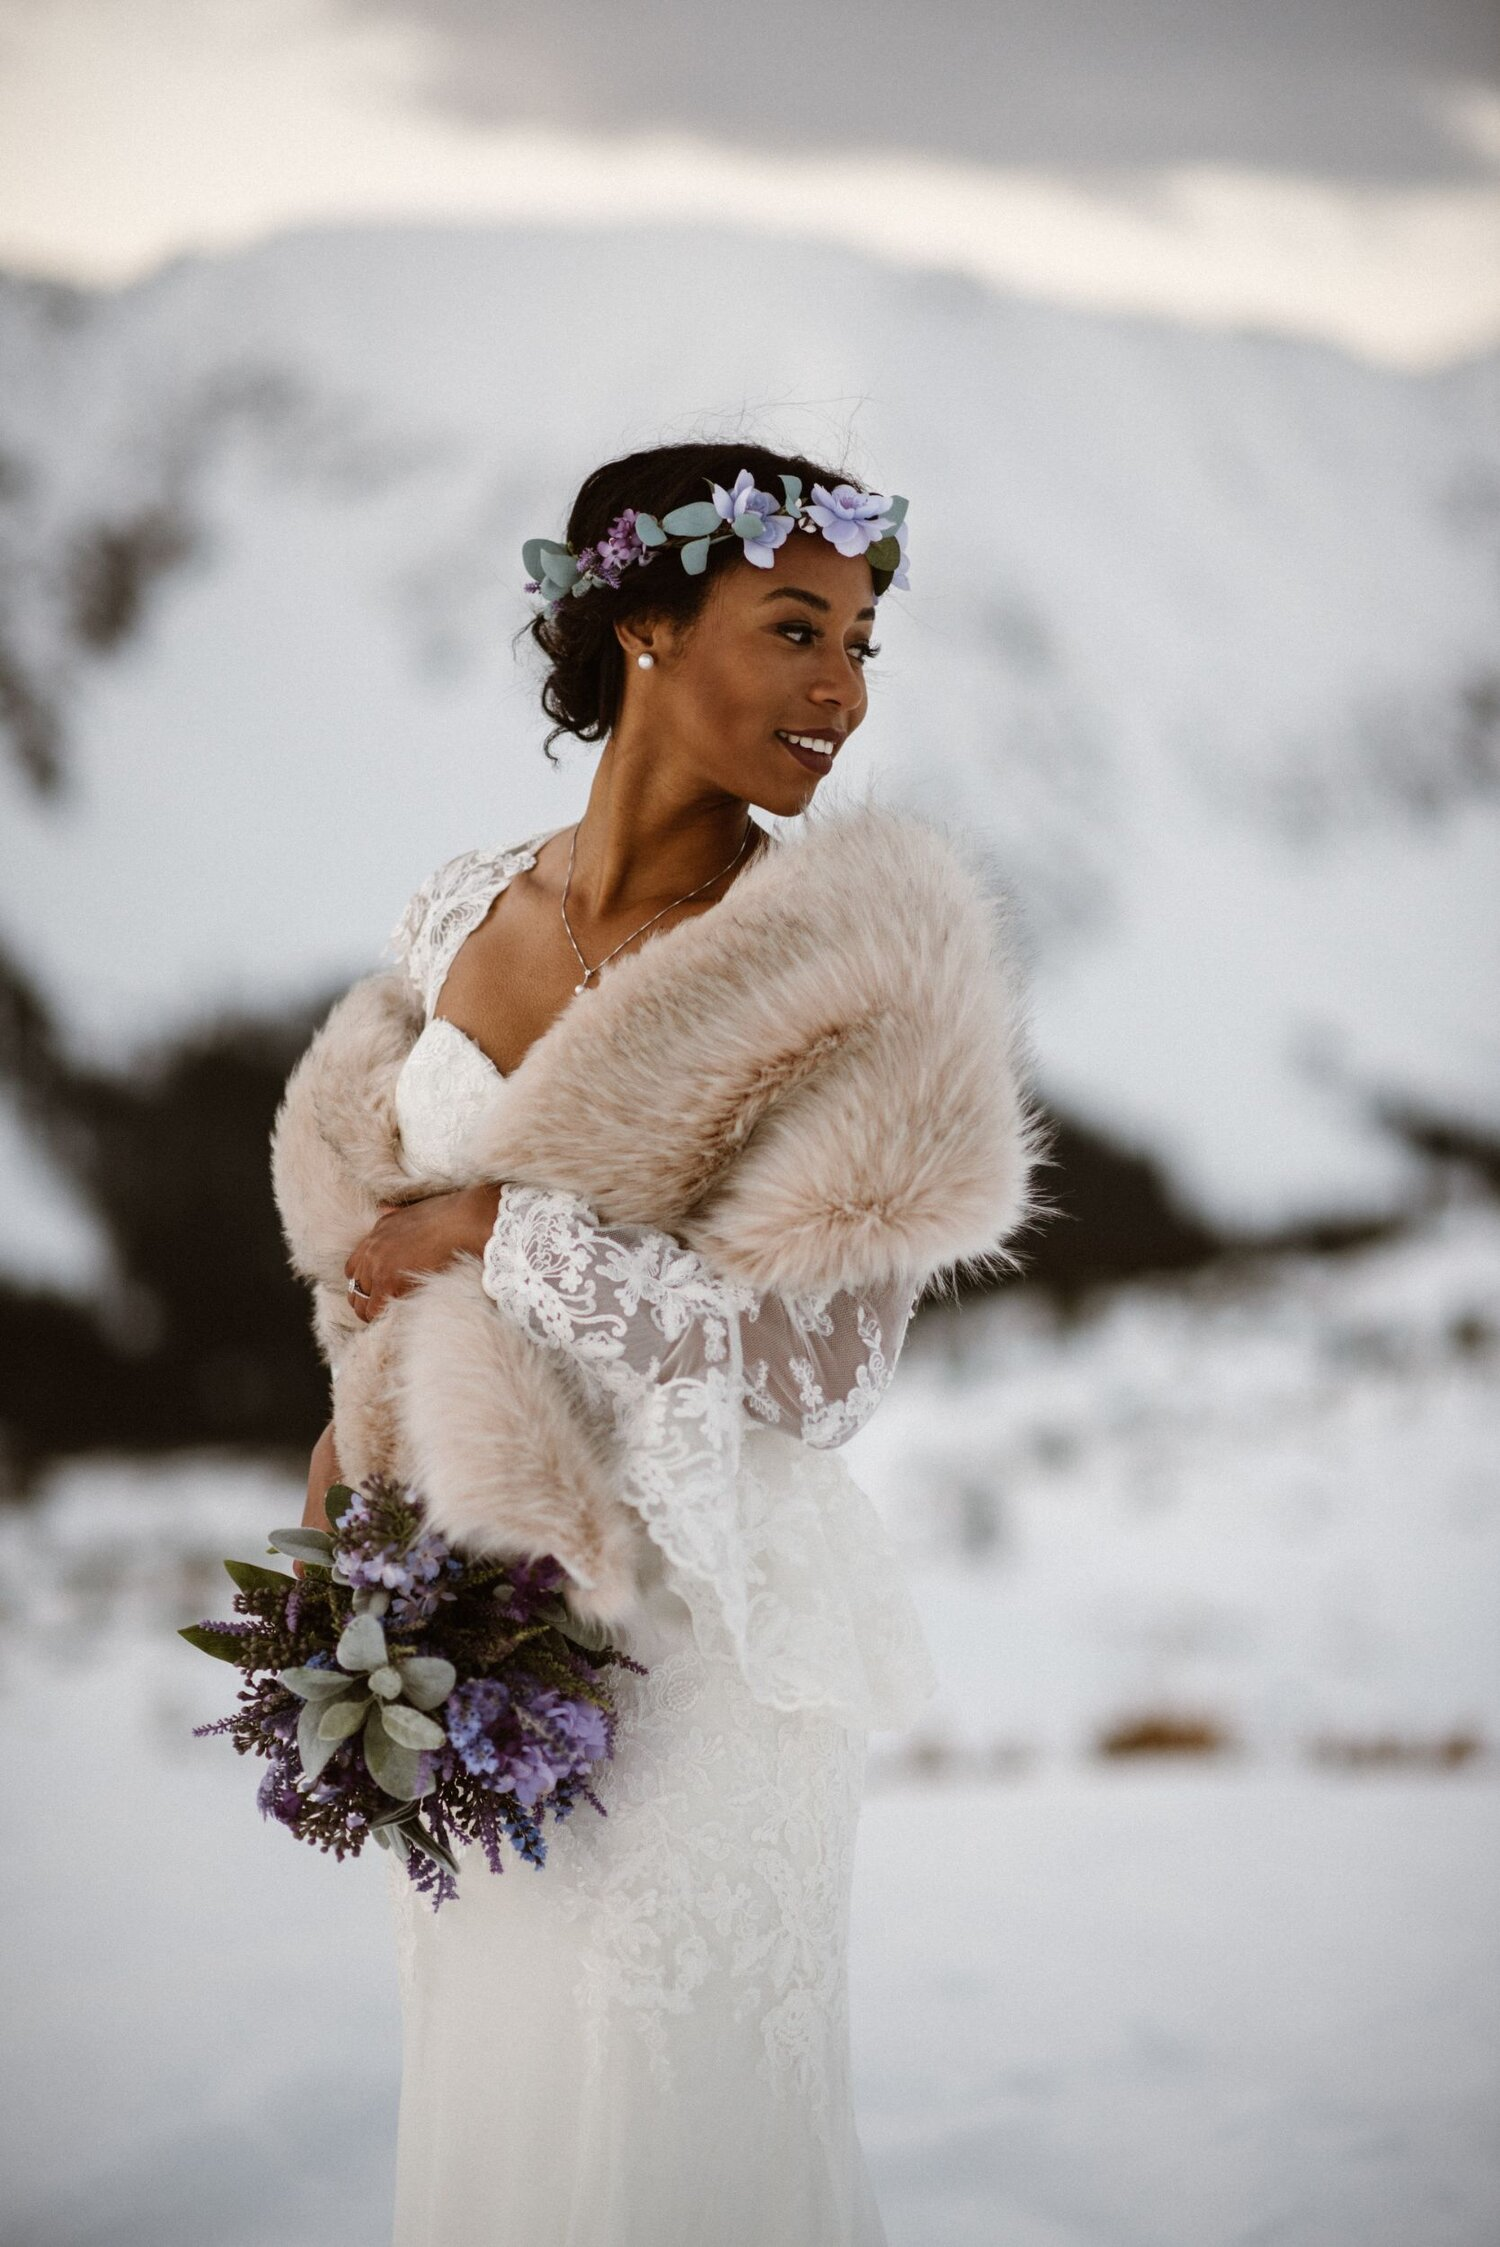 Bride dressed in a white elopement dress  is wearing a fur shawl and has a purple flower crown and bouquet.